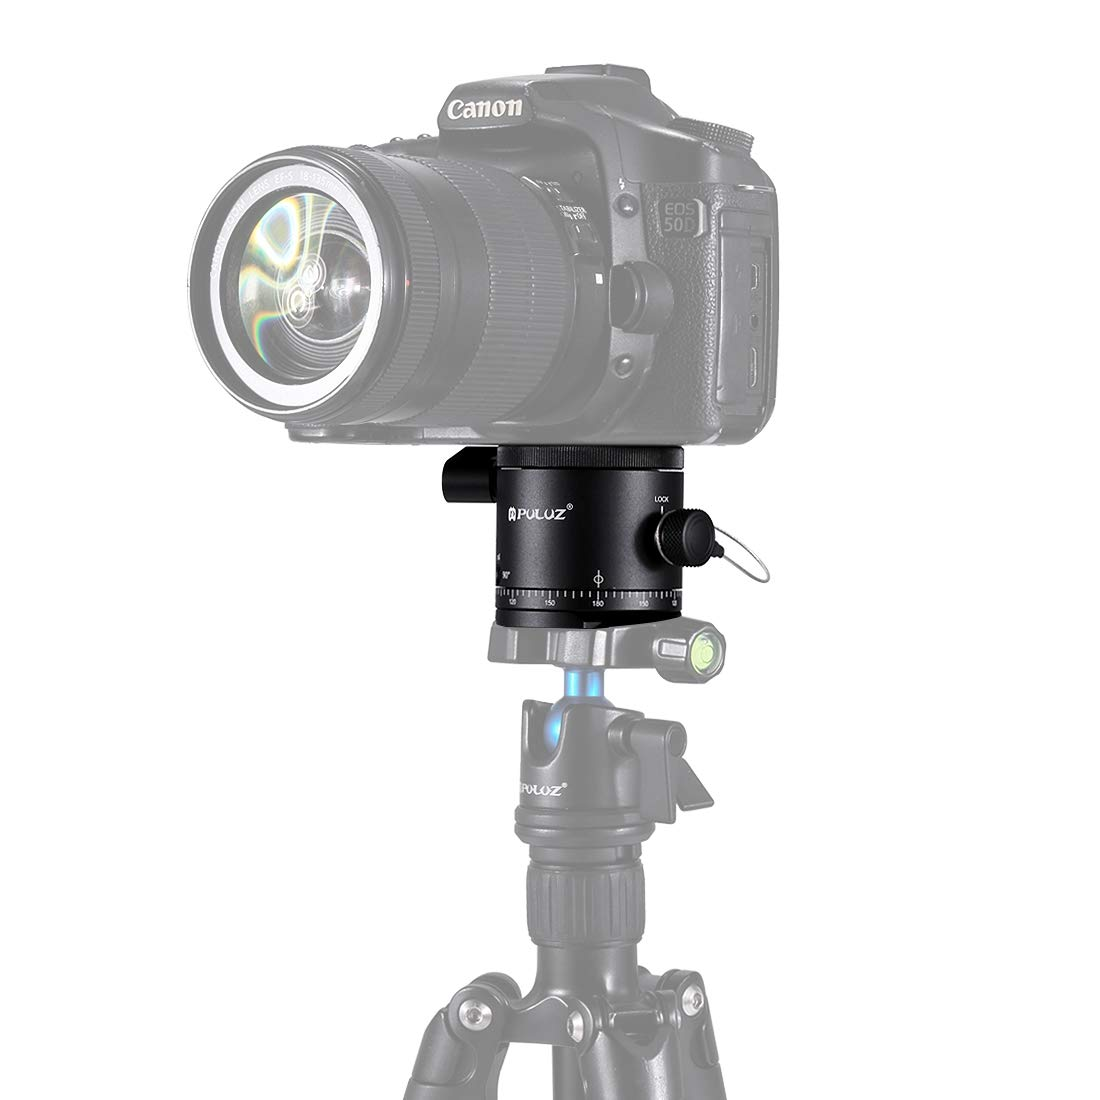 XIAOMIN Aluminum Alloy Panoramic Indexing Rotator Ball Head for Camera Tripod Head Premium Material by XIAOMIN